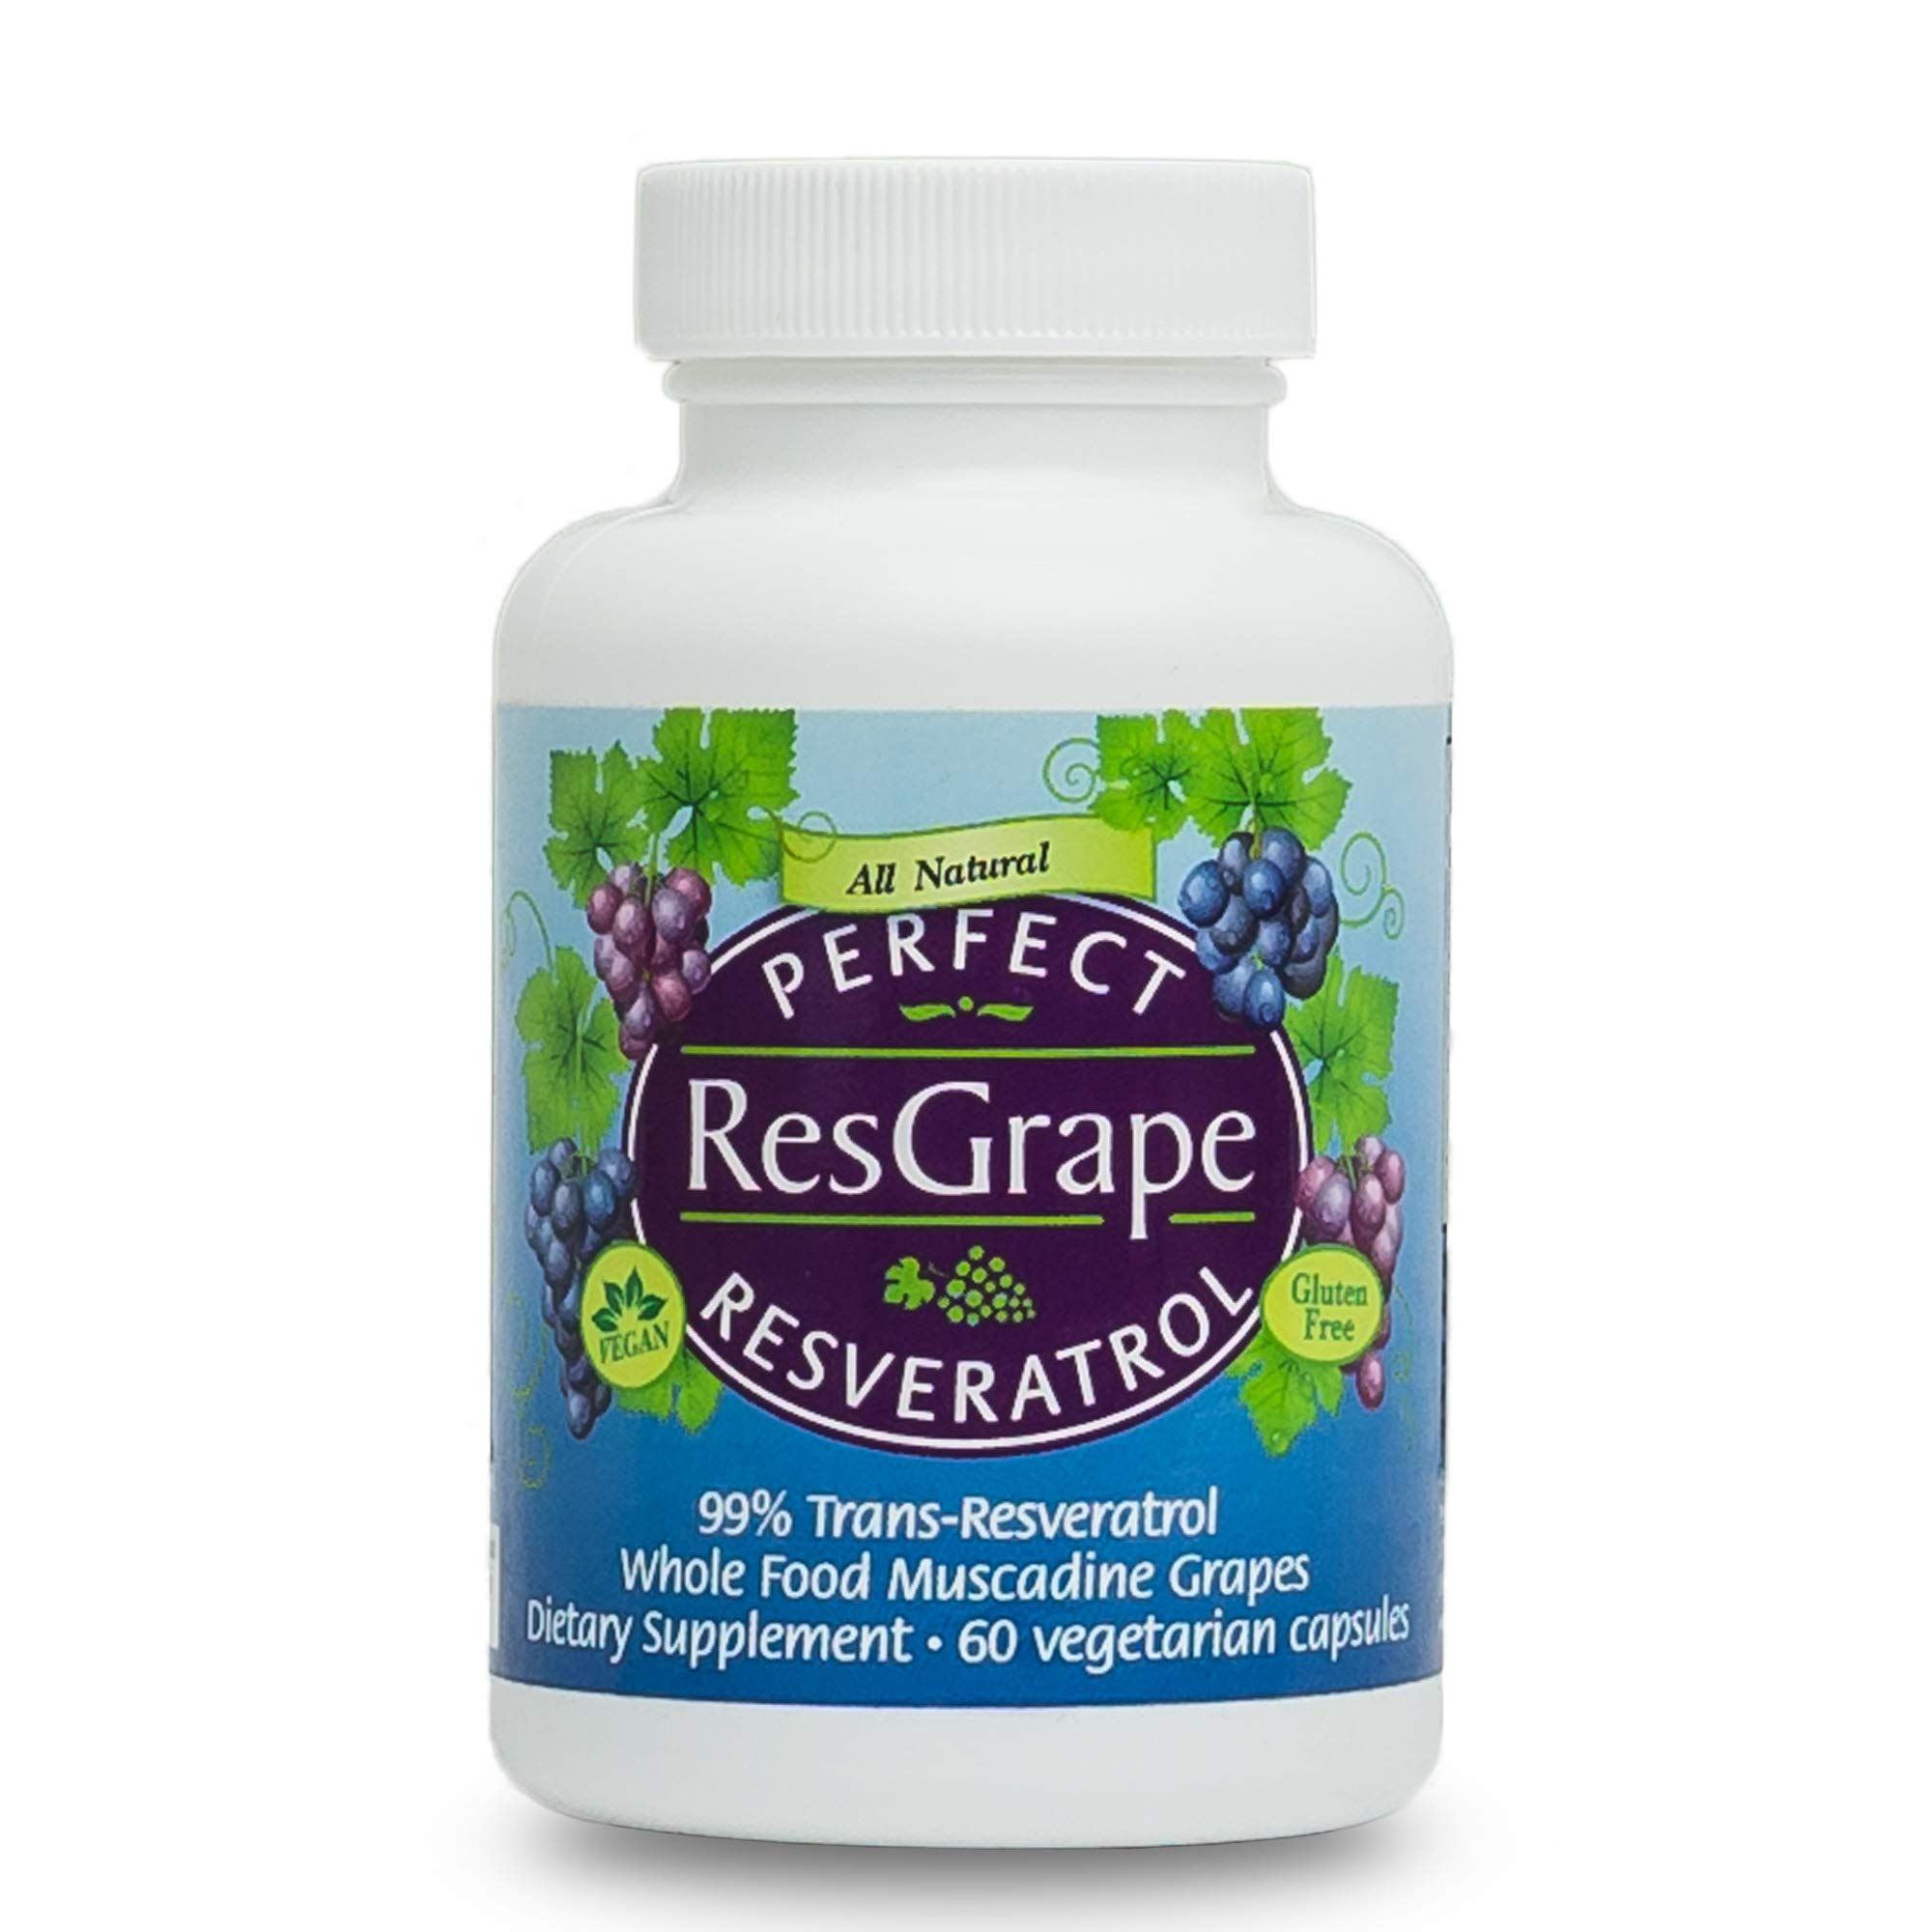 Perfect Resgrape Resveratrol Supplement - 200mg 99% Trans-Resvertarol - Made From Organic Muscadine Grapes - 60 Vegetable Capsules by Perfect Supplements